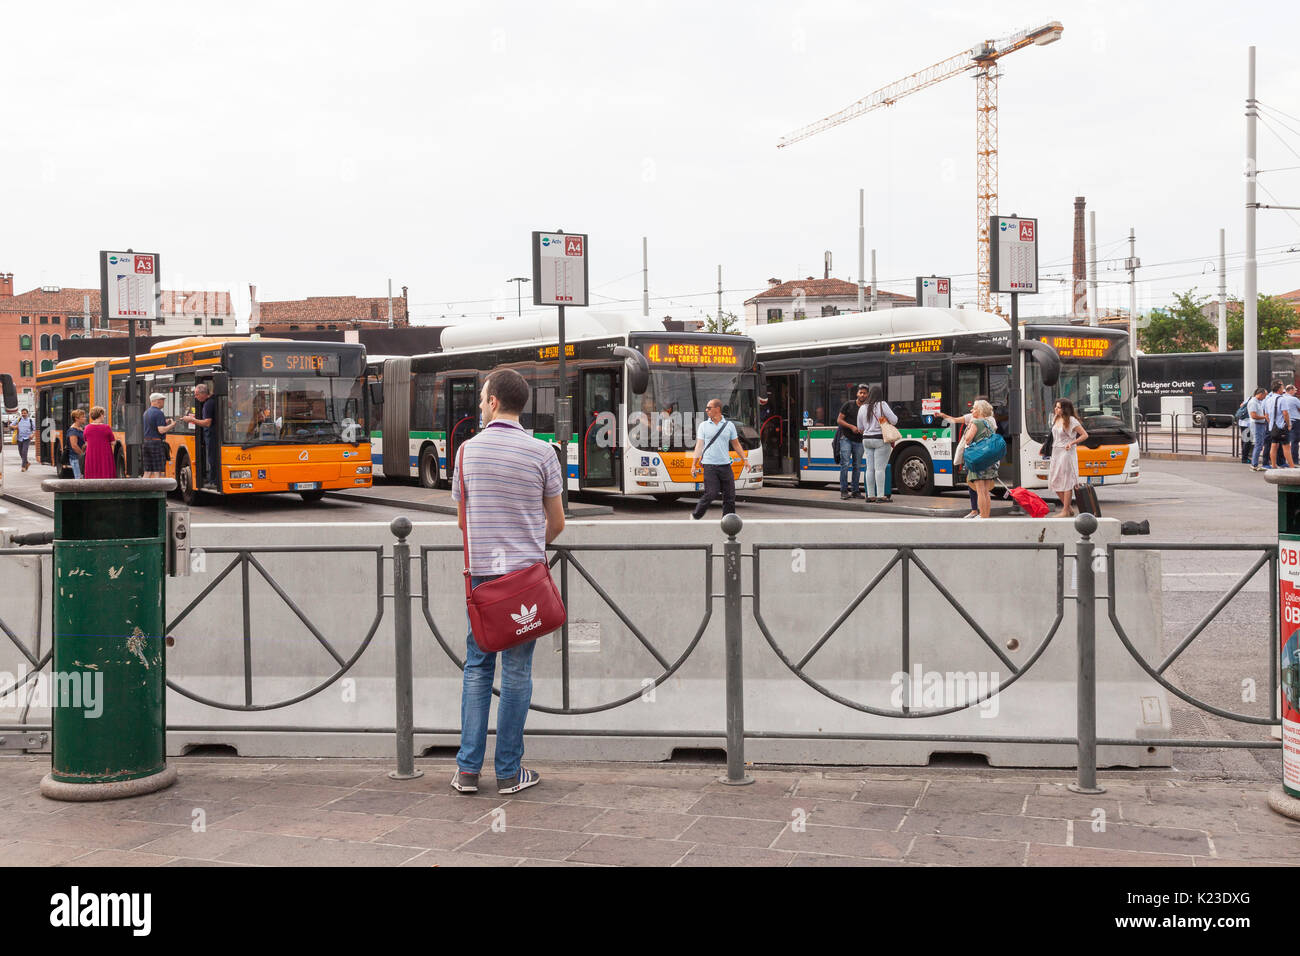 Venice, Veneto, Italy, 28th August 2017. Anti-terror concrete barriers and police presence in Piazzale Roma ahead of the start of the Venice Film Festival. This is the first day after completion of the installation of the barriers to check the viabilty of traffic  flow and pedestrians. Buses behind the barrier watched by a Venetian man. An armoured car was in place on Ponte della Liberta. The barriers are designed to block any vehicular attack. Credit Mary Clarke/Alamy Live news - Stock Image